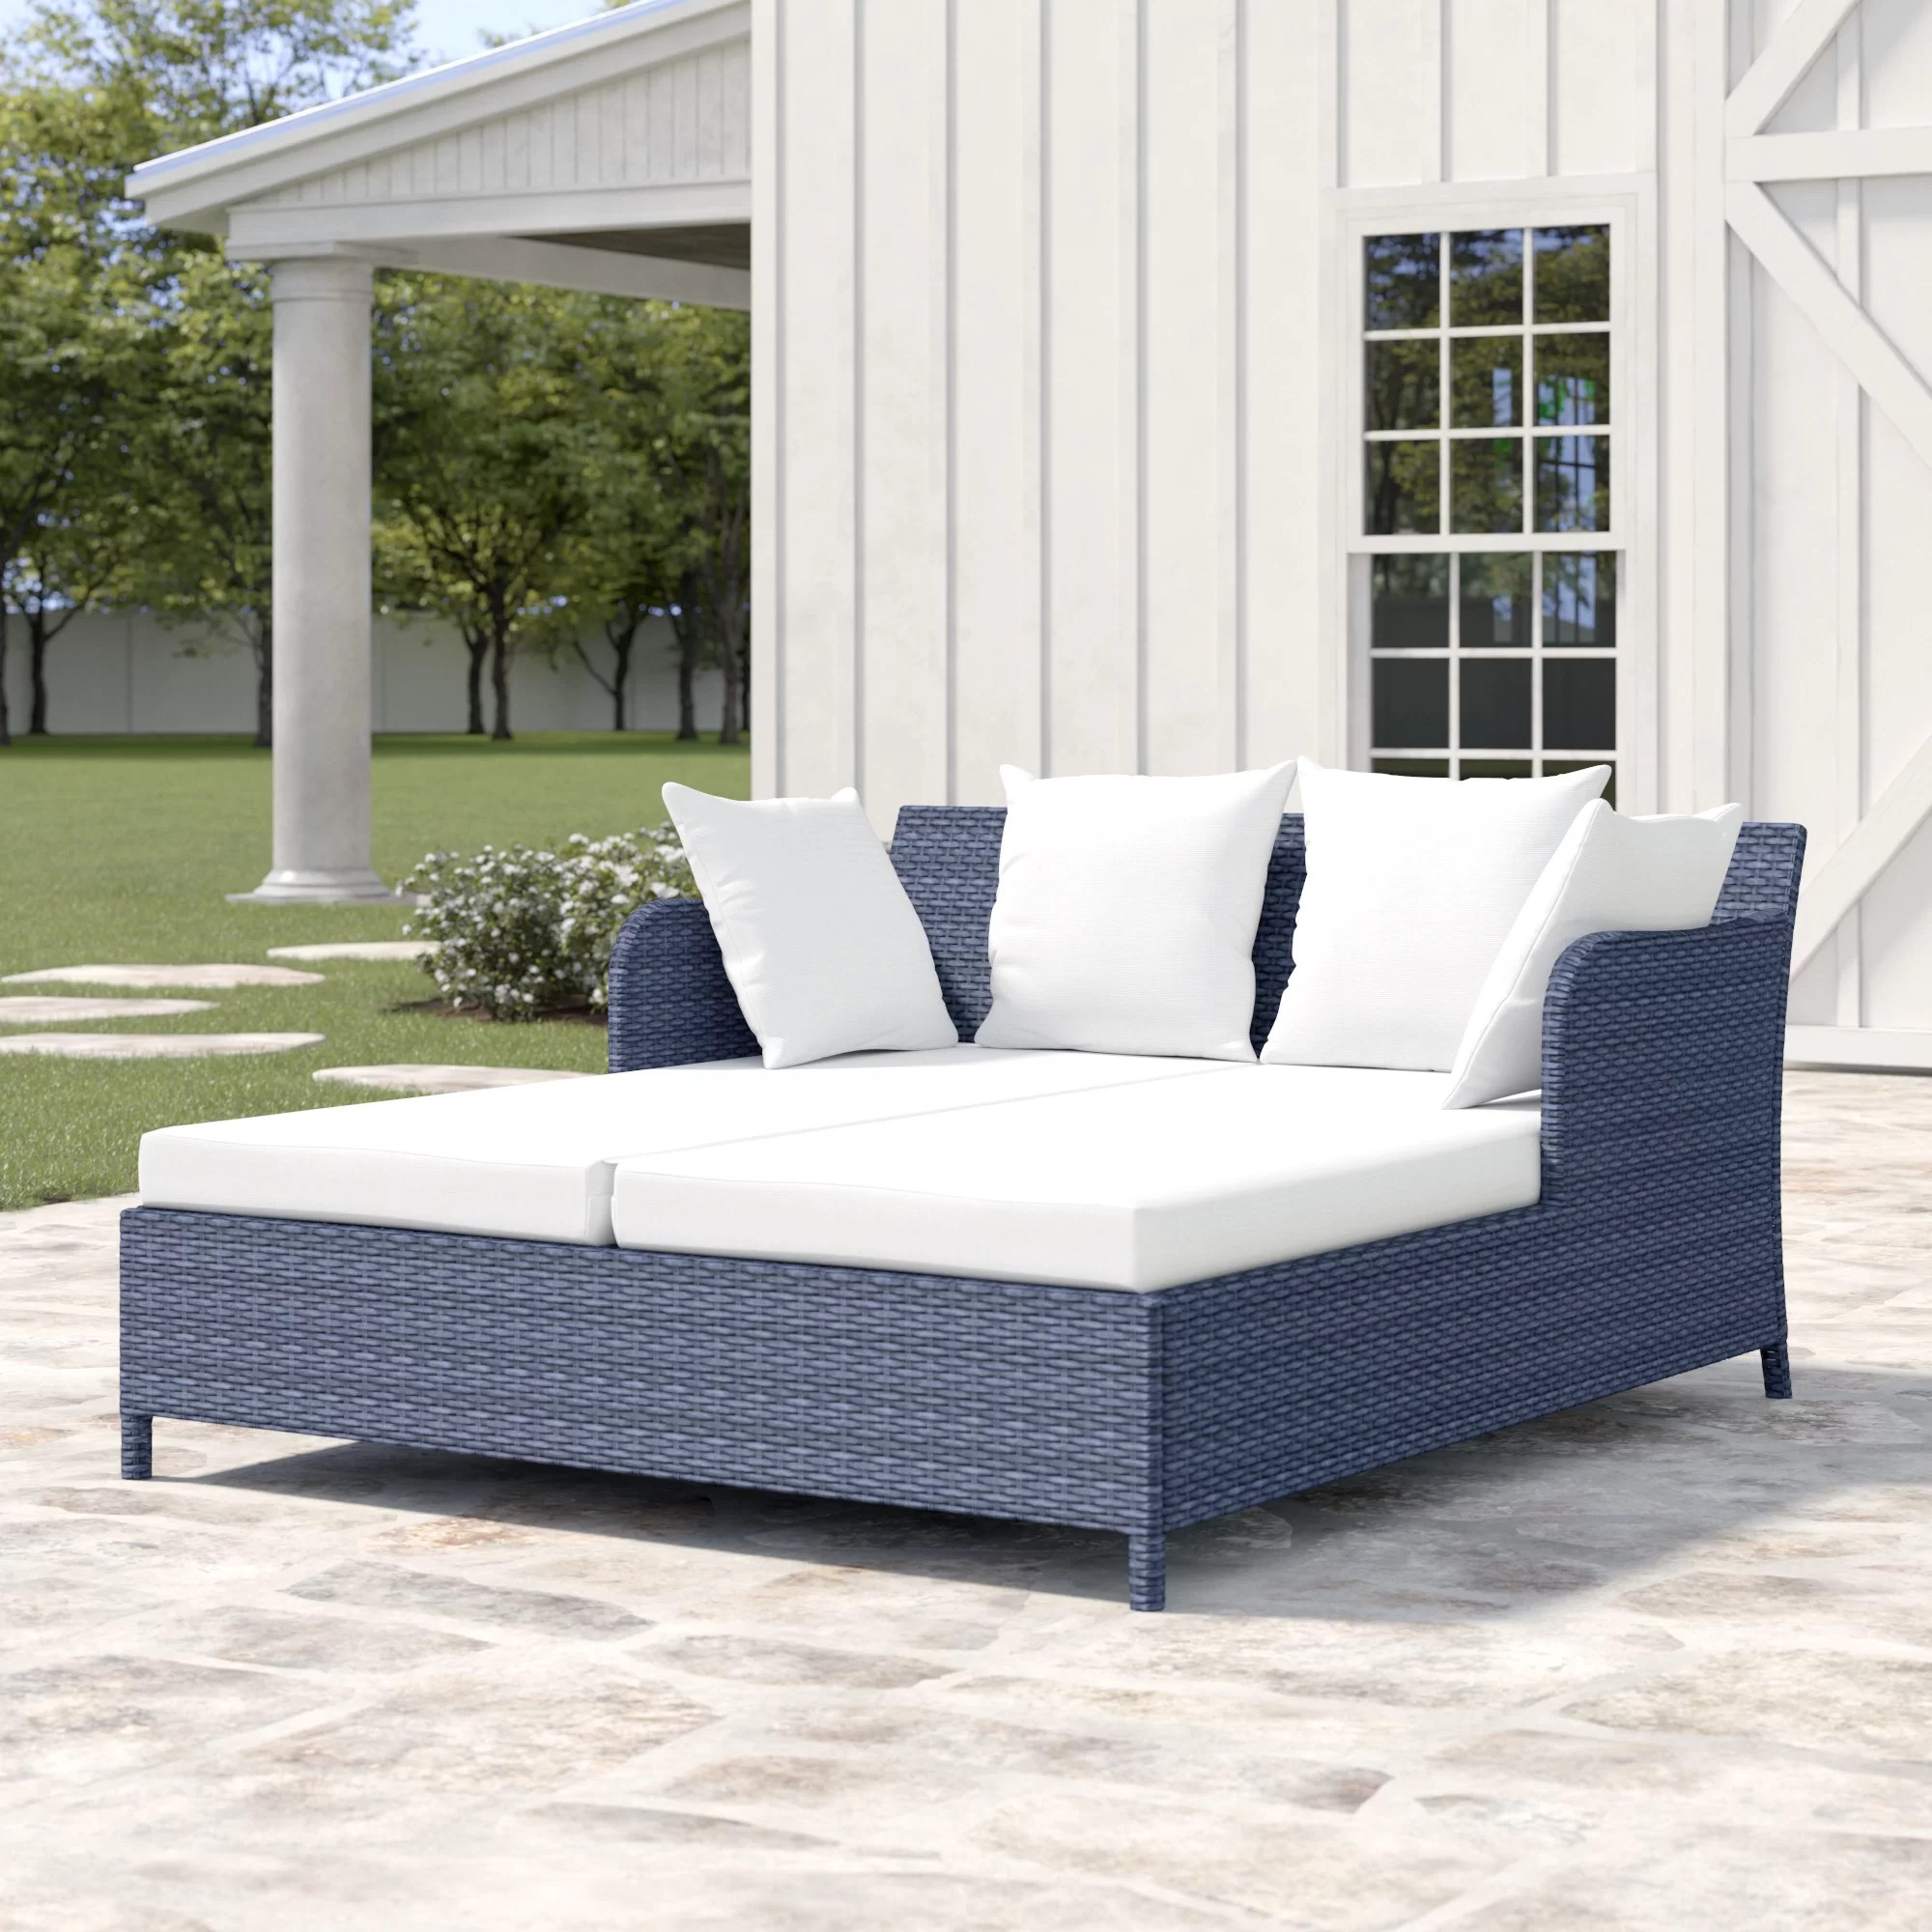 daley double chaise lounge with cushion